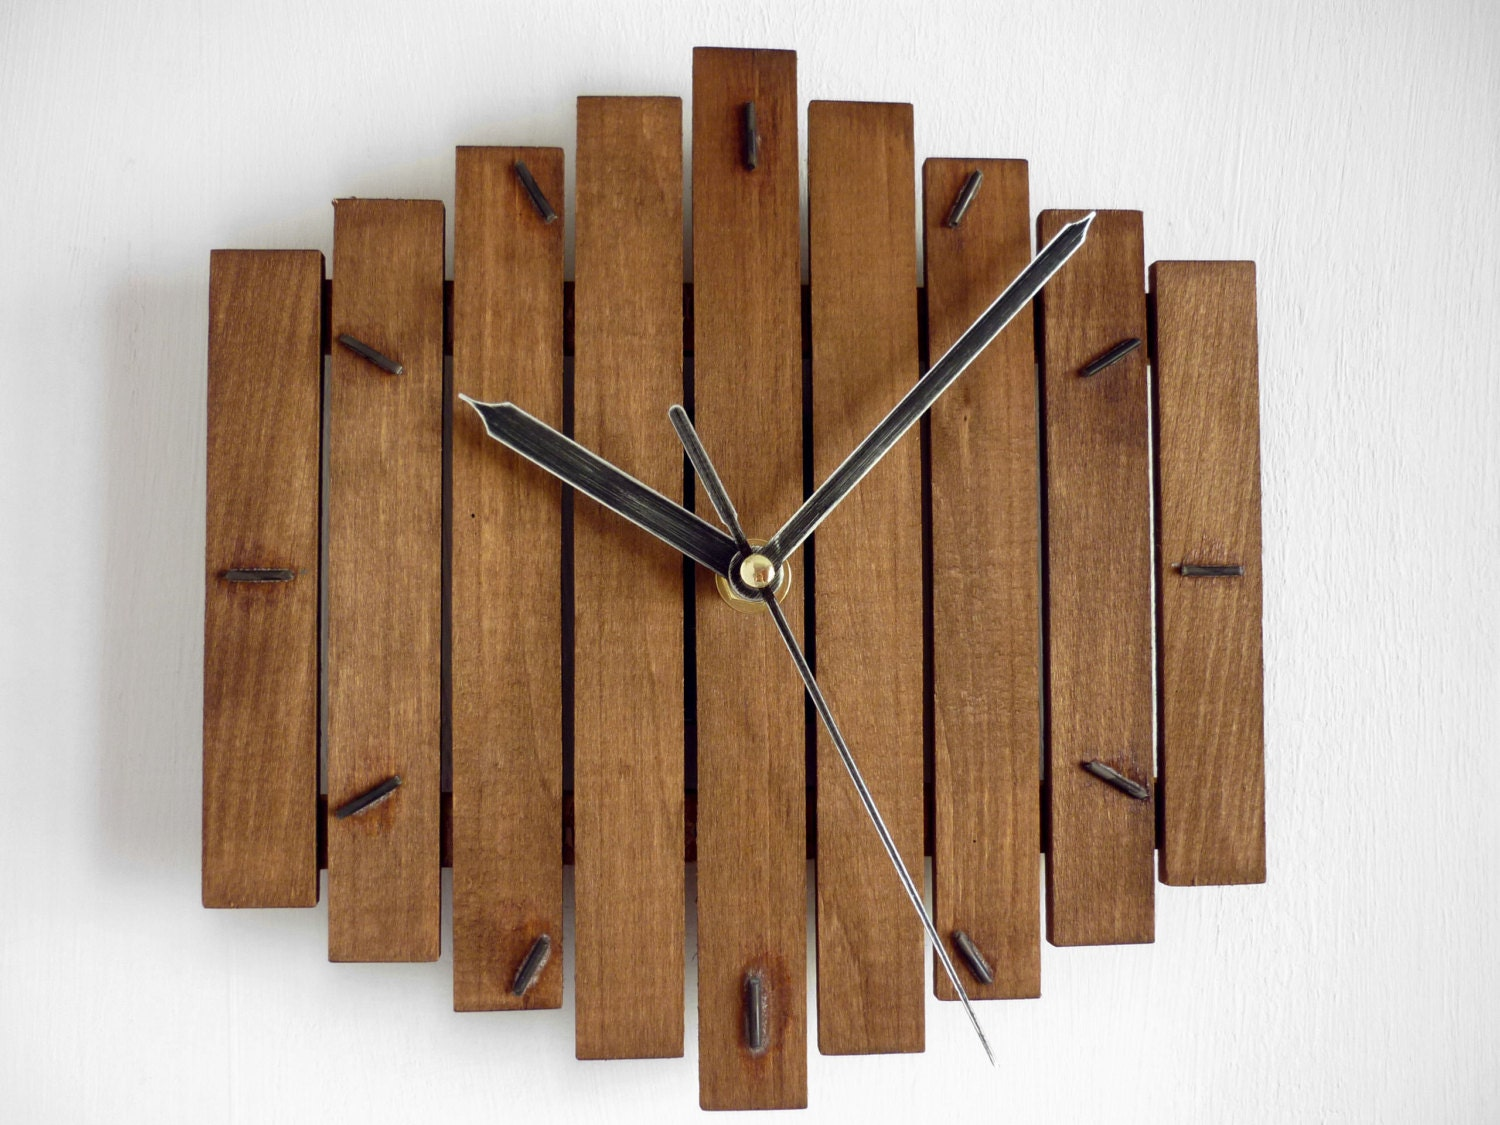 Woodworking Clocks With Simple Style | egorlin.com